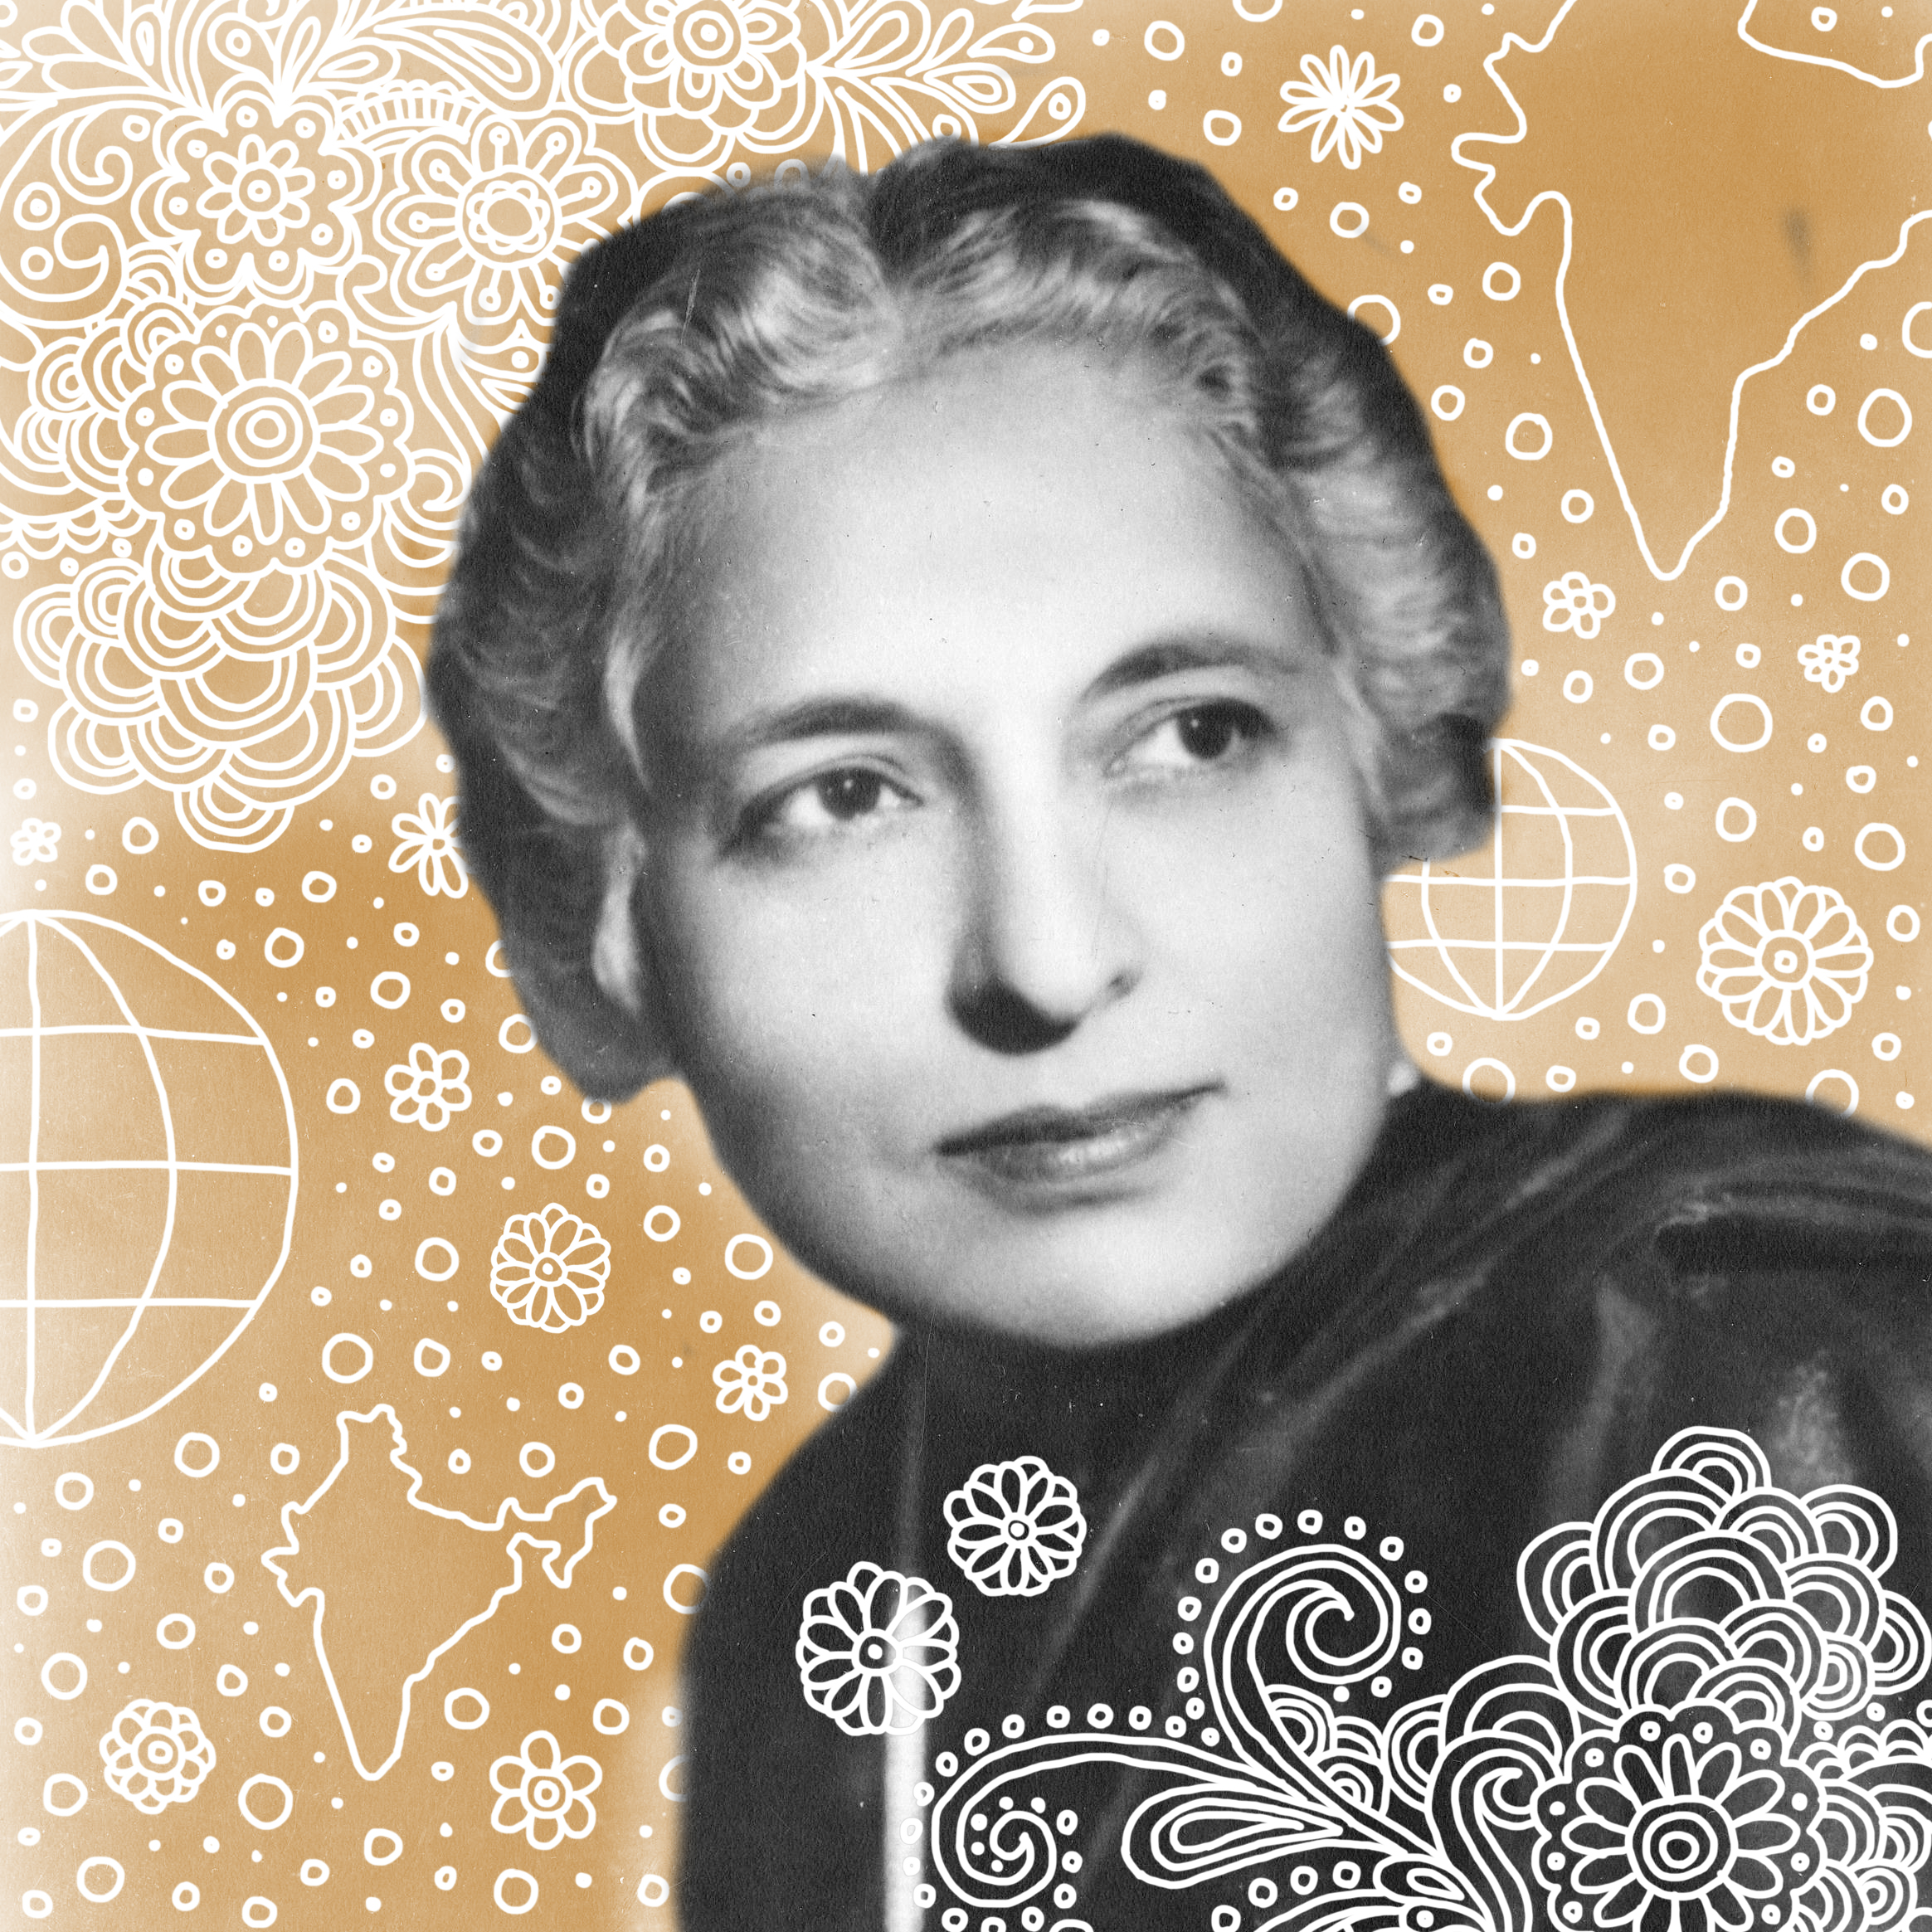 Vijaya Lakshmi Pandit   At a time when a political career was non-existent for women, the late Vijaya Lakshmi Pandit was way ahead of her times. Pandit became the first female president of the UN General Assembly in 1953, and was the first Indian woman to hold a cabinet post, serving twice as the president of Indian Congress.